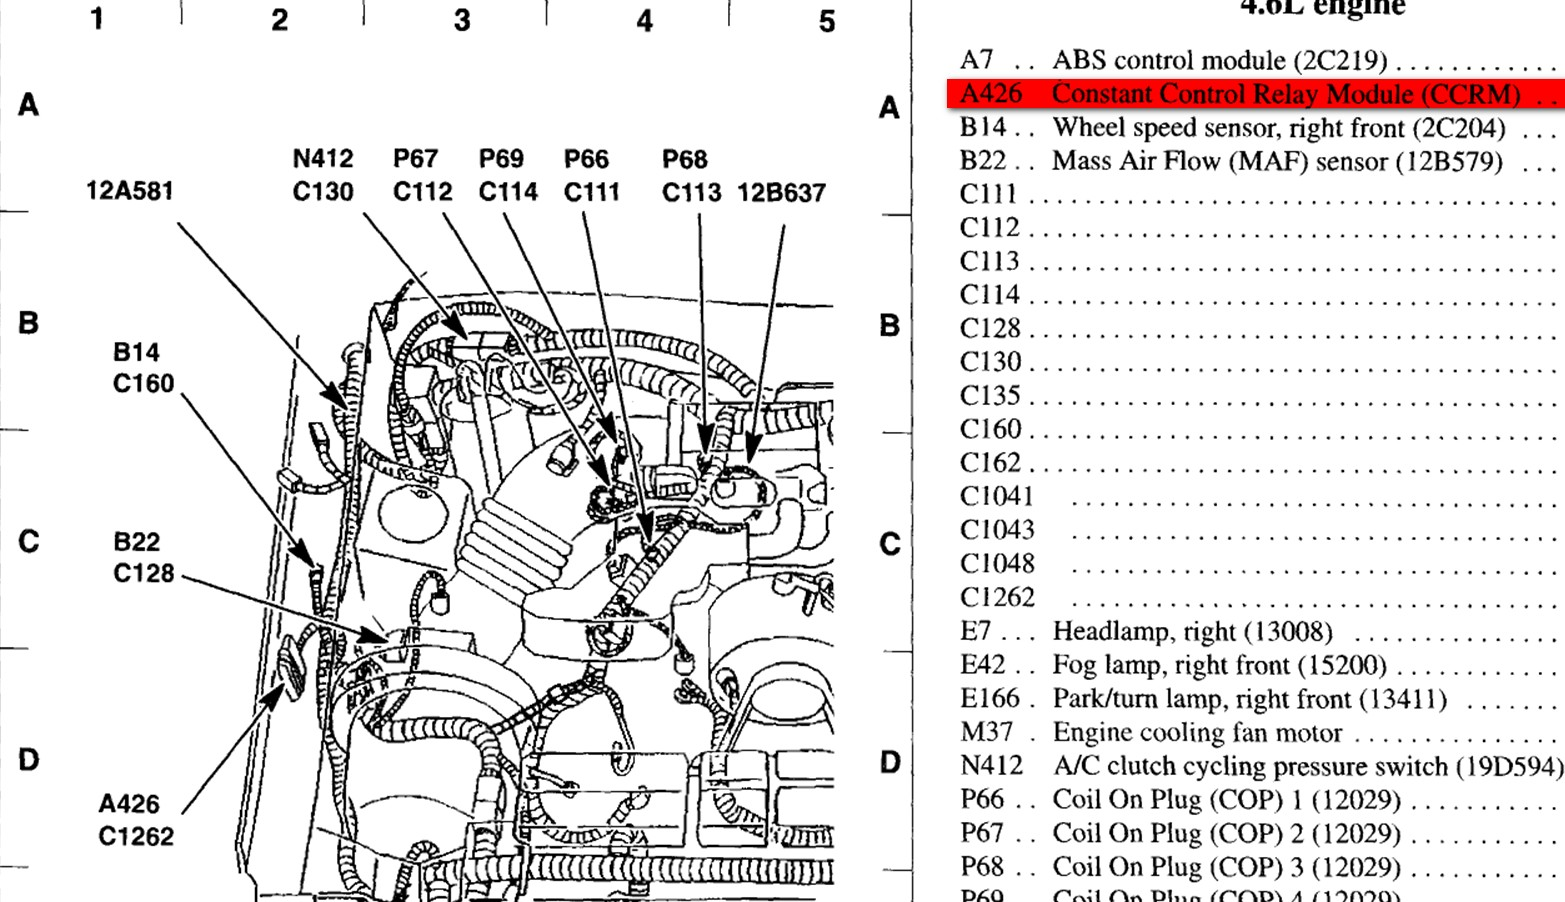 2005 Ford F 150 Fuel Relay Fuse Box Diagram Wiring Library 02 Mustang 2001 F150 Pump Image Details Wire 05 Altima